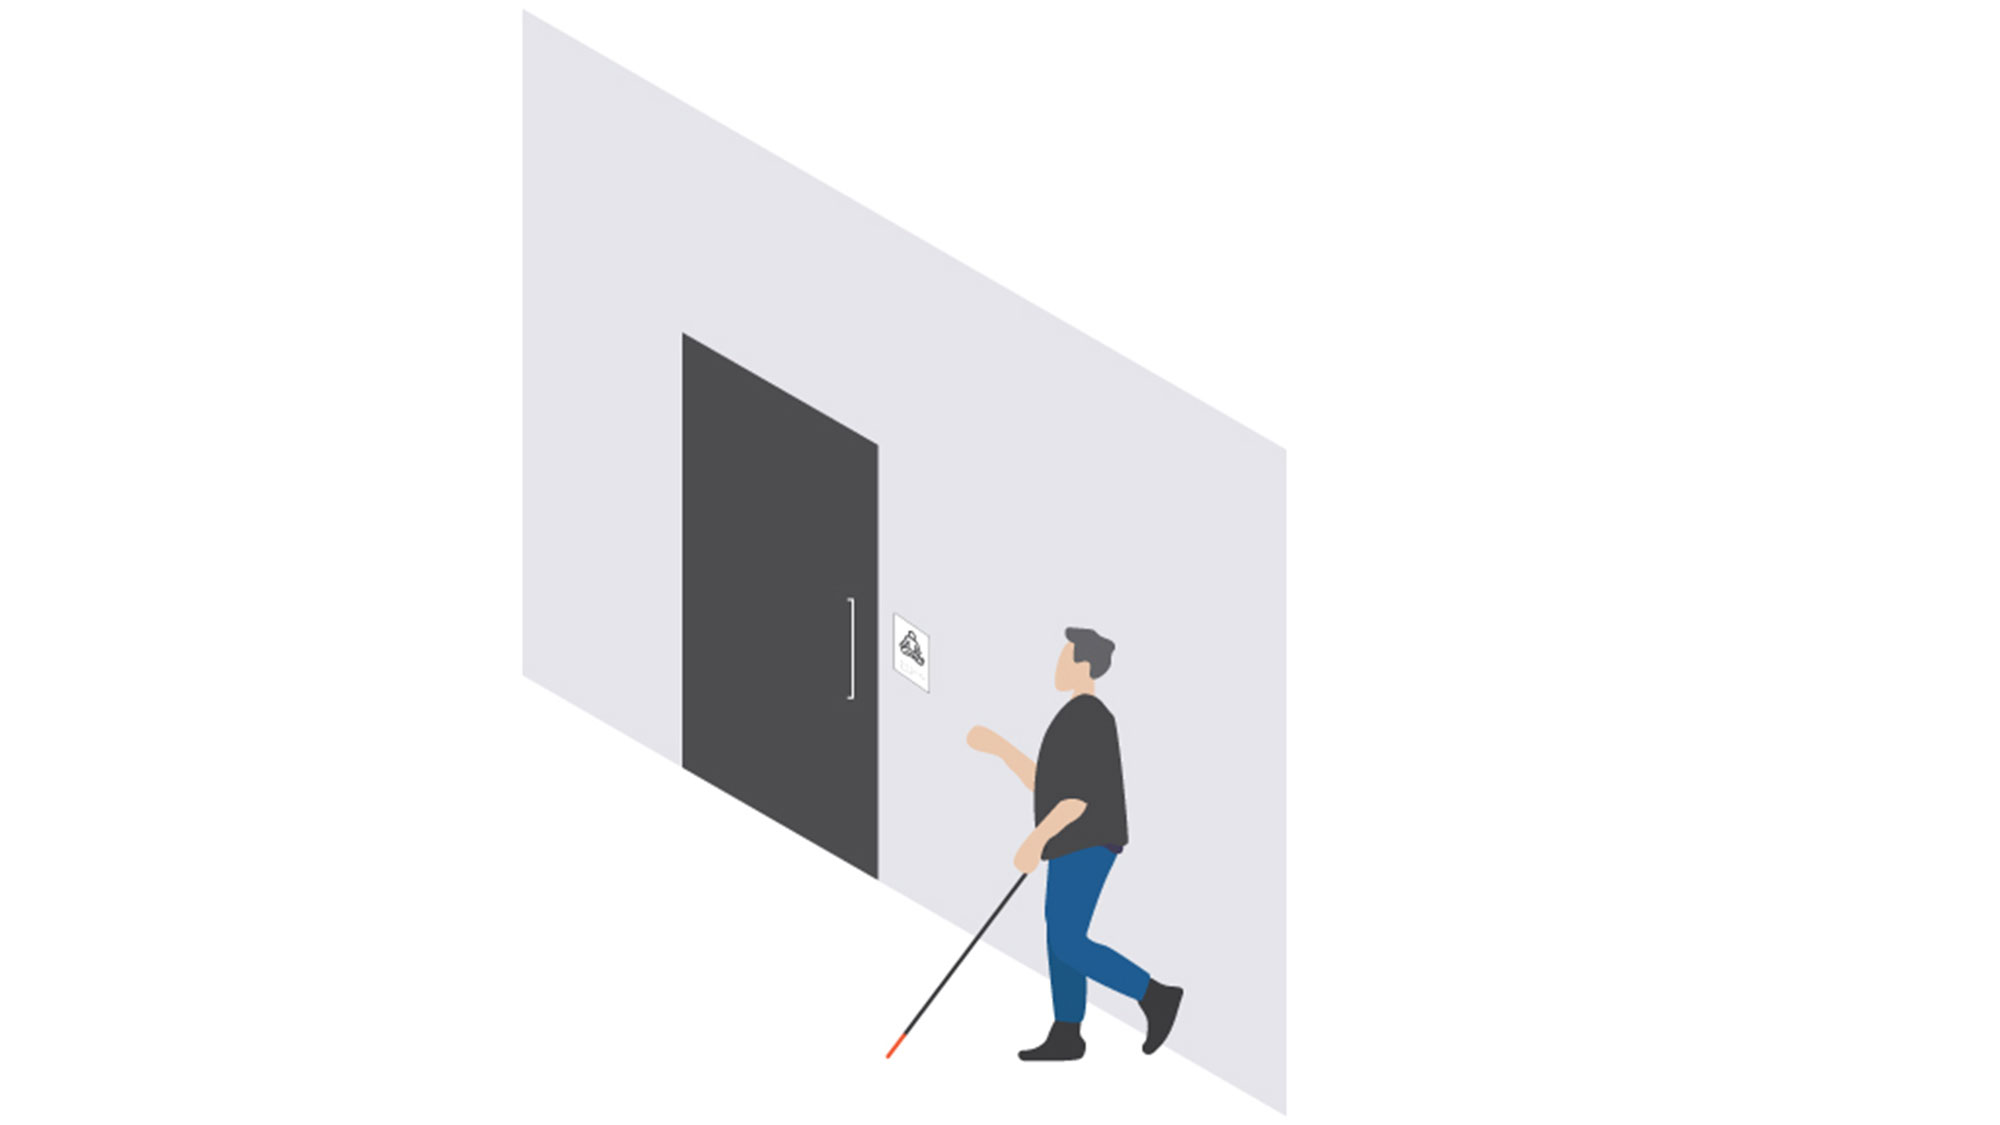 A graphic illustration of a person walking along a wall with a white cane, coming up to signage adjacent to a tonally contrasted door.